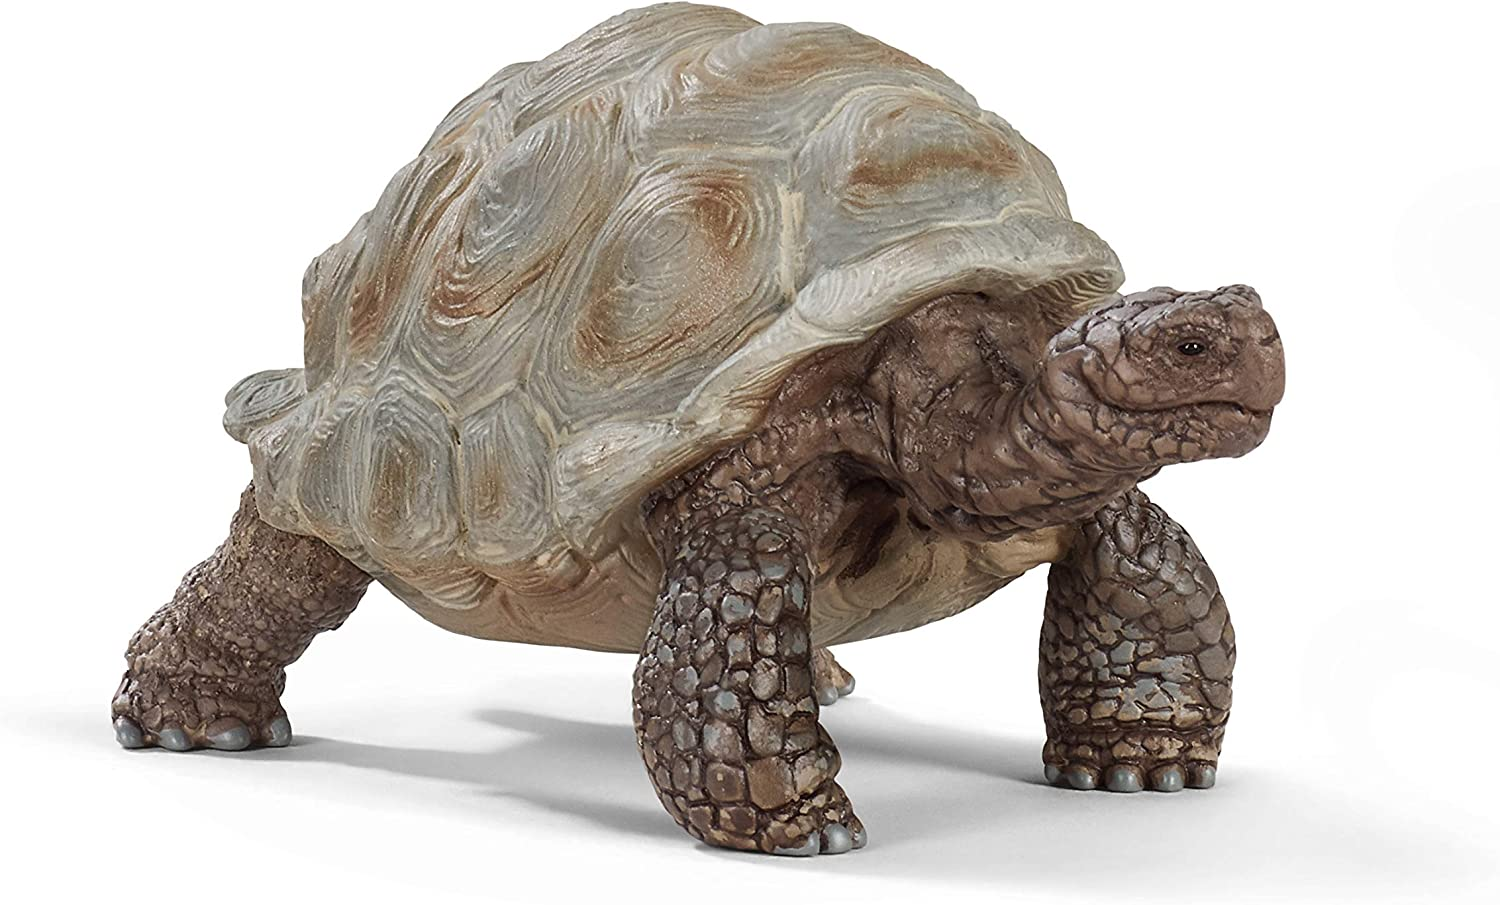 SCHLEICH Wild Life Giant Tortoise Educational Figurine for Kids Ages 3-8